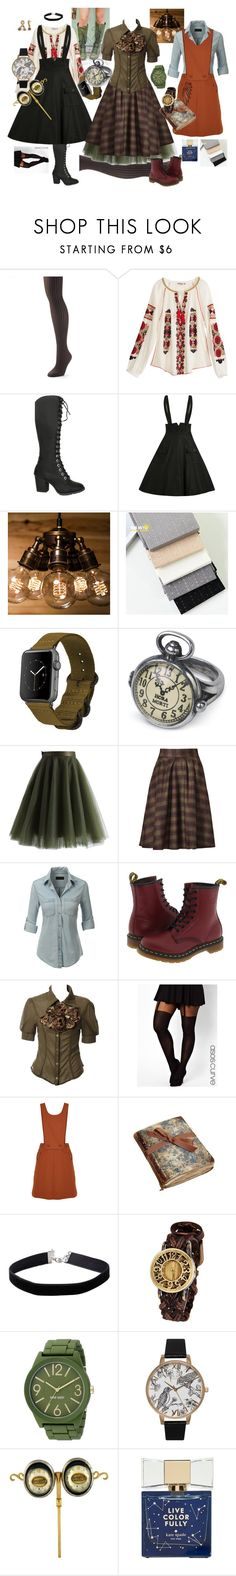 """""""Use your evil"""" by amanda-anda-panda ❤ liked on Polyvore featuring Apt. 9, Calypso St. Barth, Monowear, Chicwish, J.O.A., LE3NO, Dr. Martens, ASOS, TIBI and Swatch"""